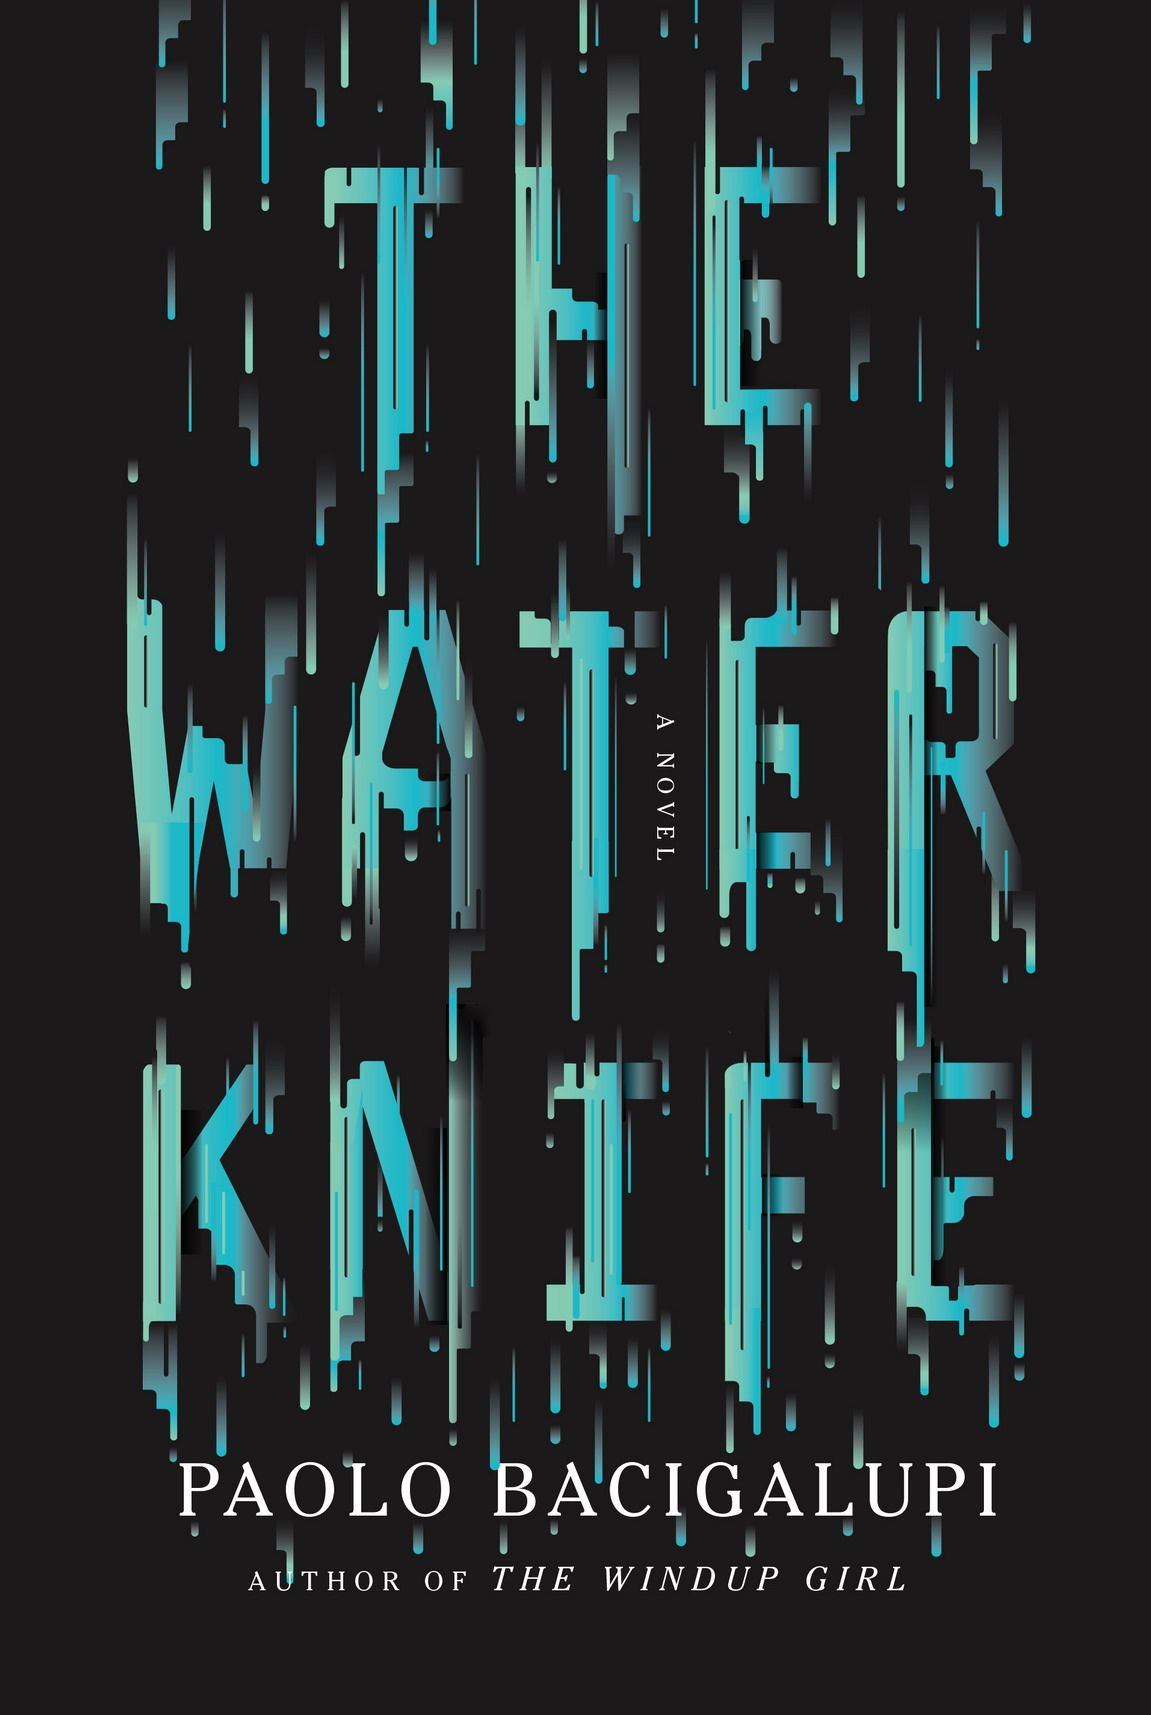 Download Free Ebook The Water Knife  Paolo Bacigalupi Epub Pdf Mobi